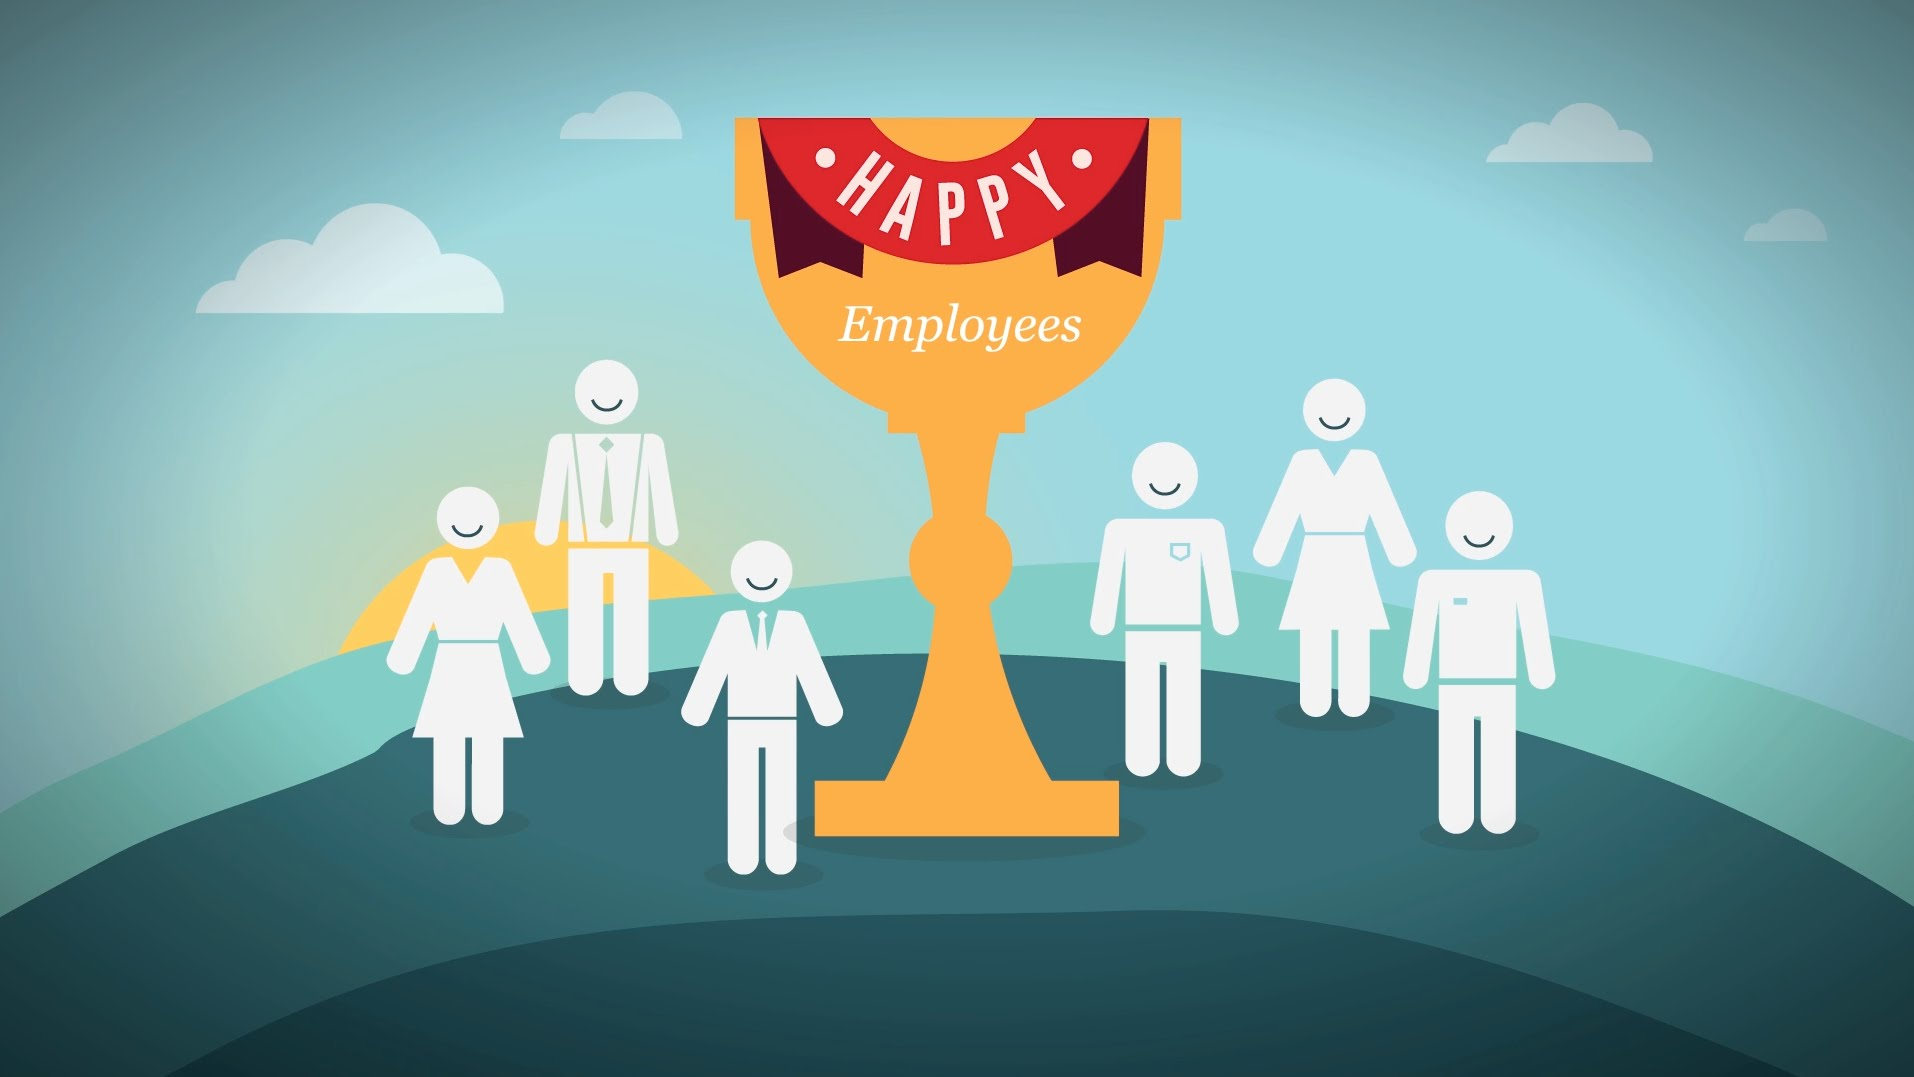 should employees be characterised as human There are many benefits of employee empowerment that help managers build stronger teams and more productive work forces  trust is the foundation of empowering employees and recognizing their.